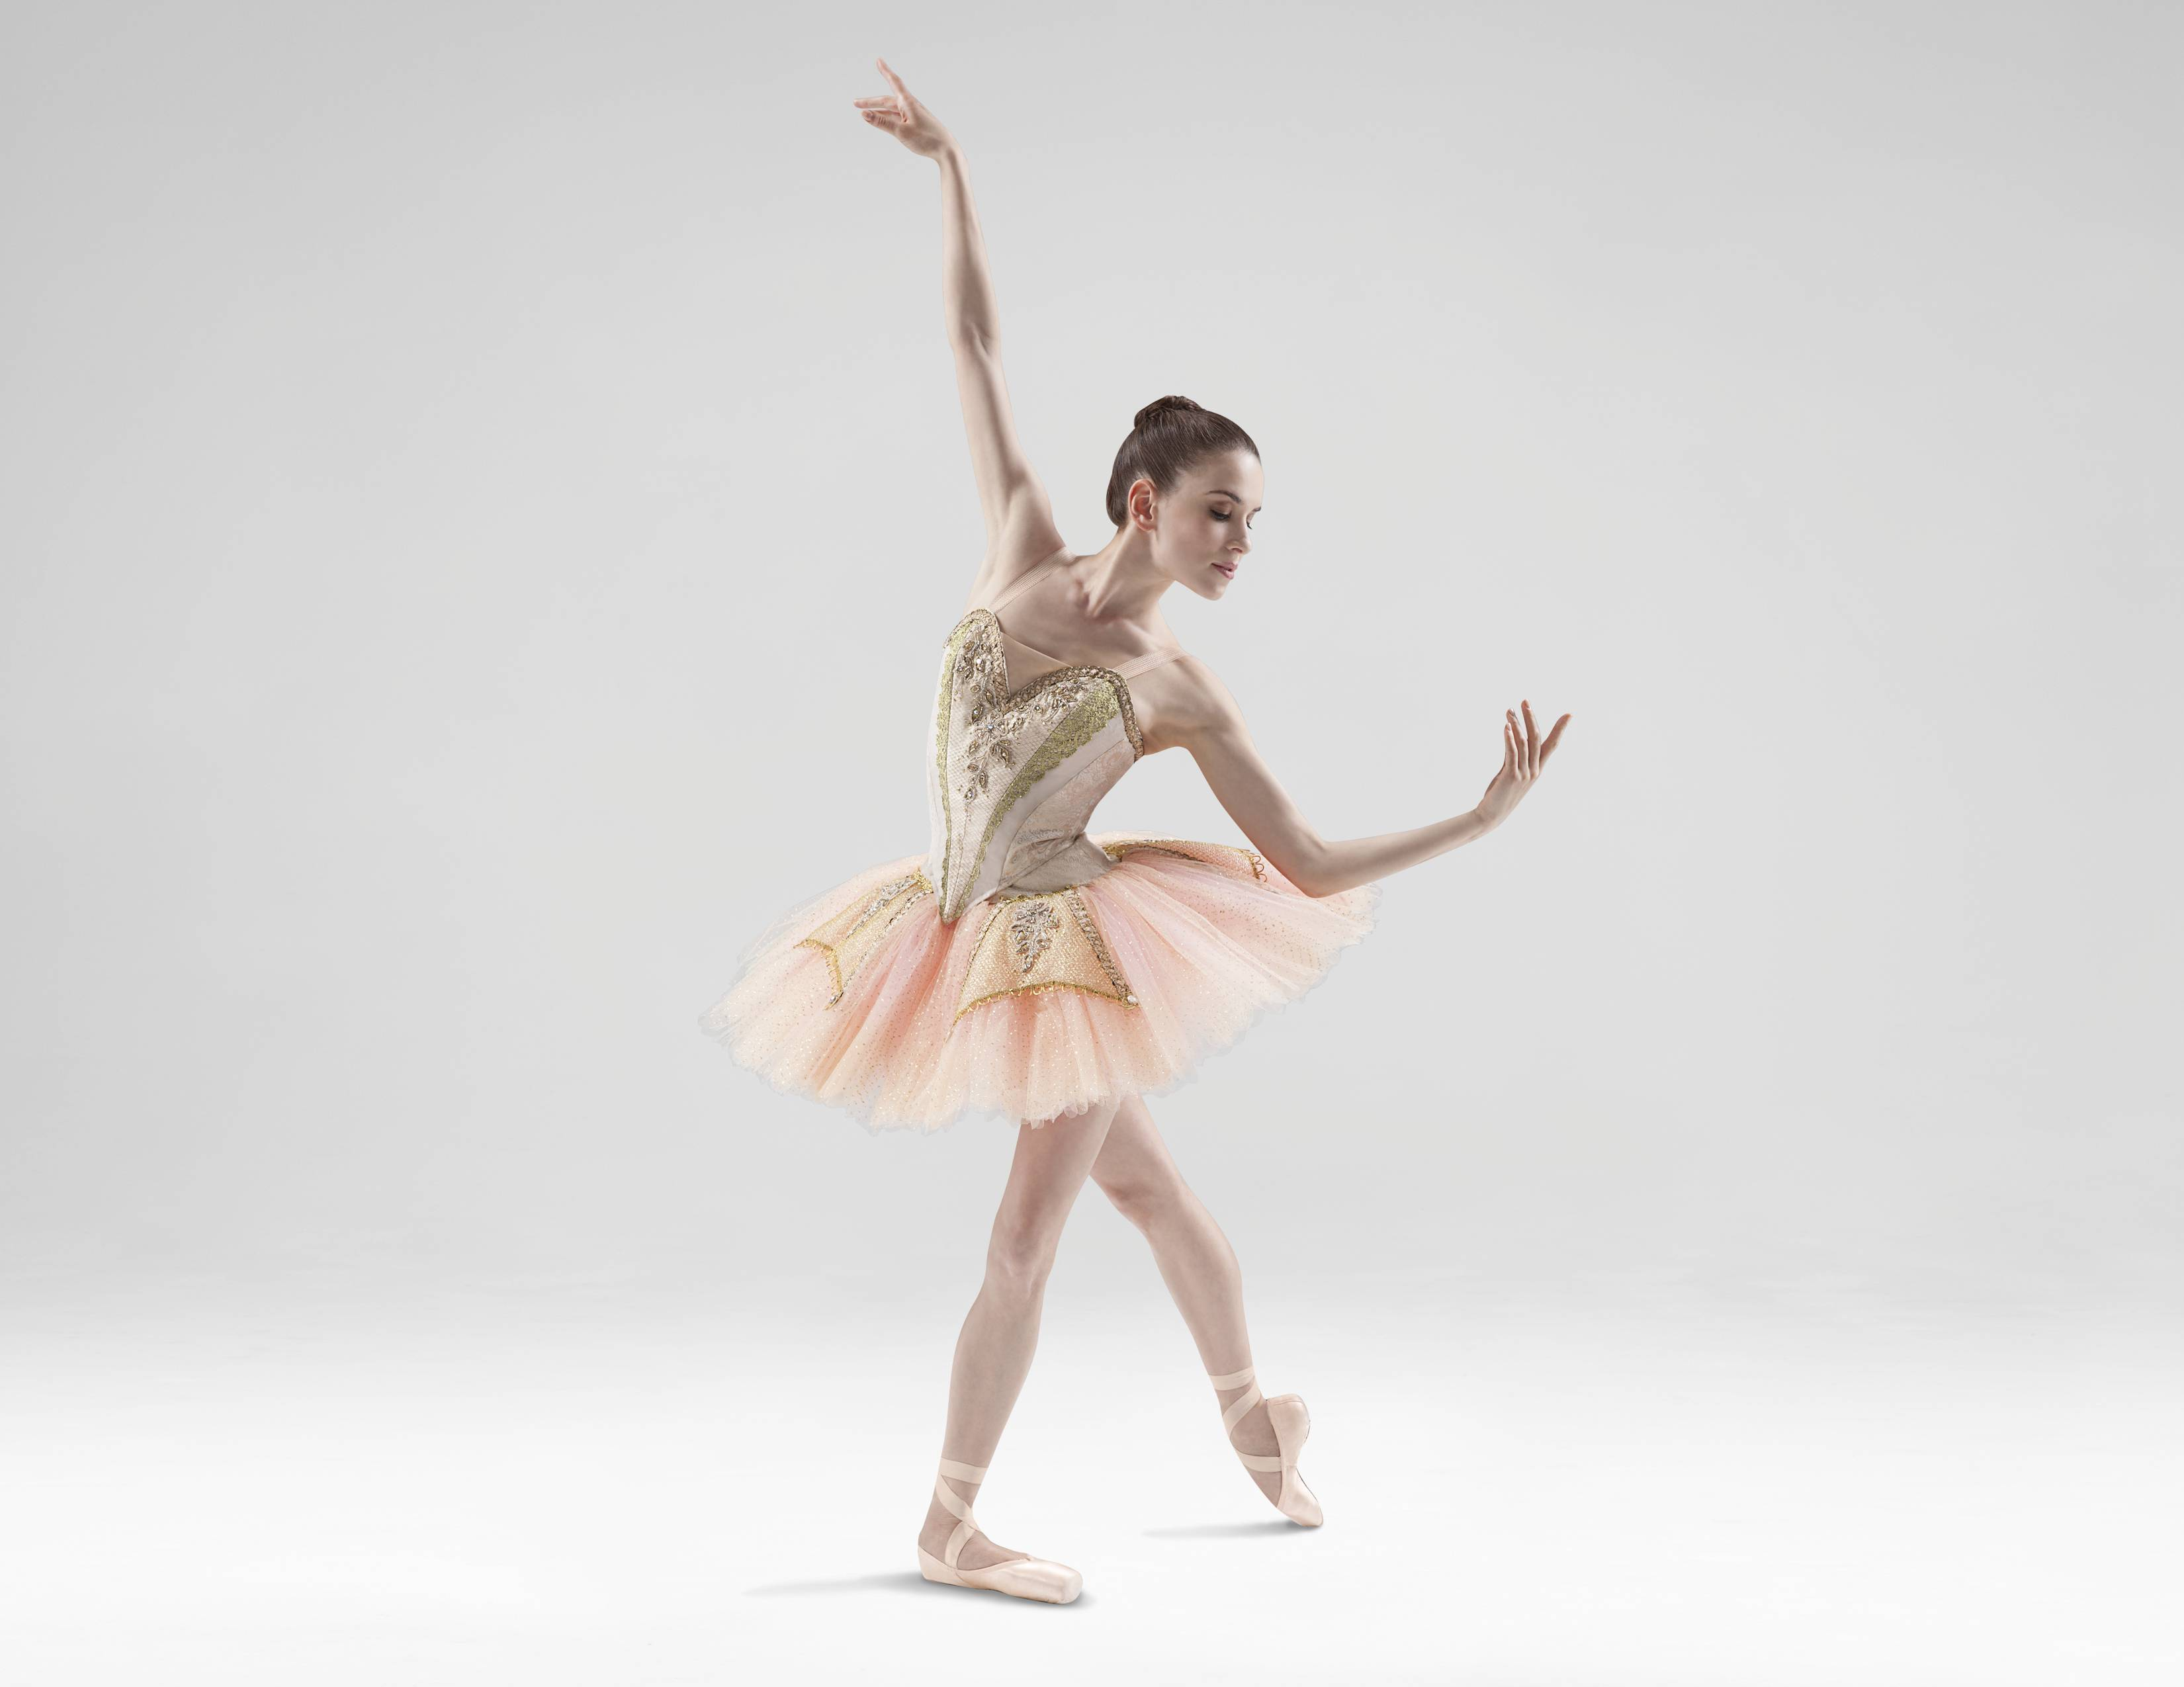 Abigail Simon of the Joffrey Ballet